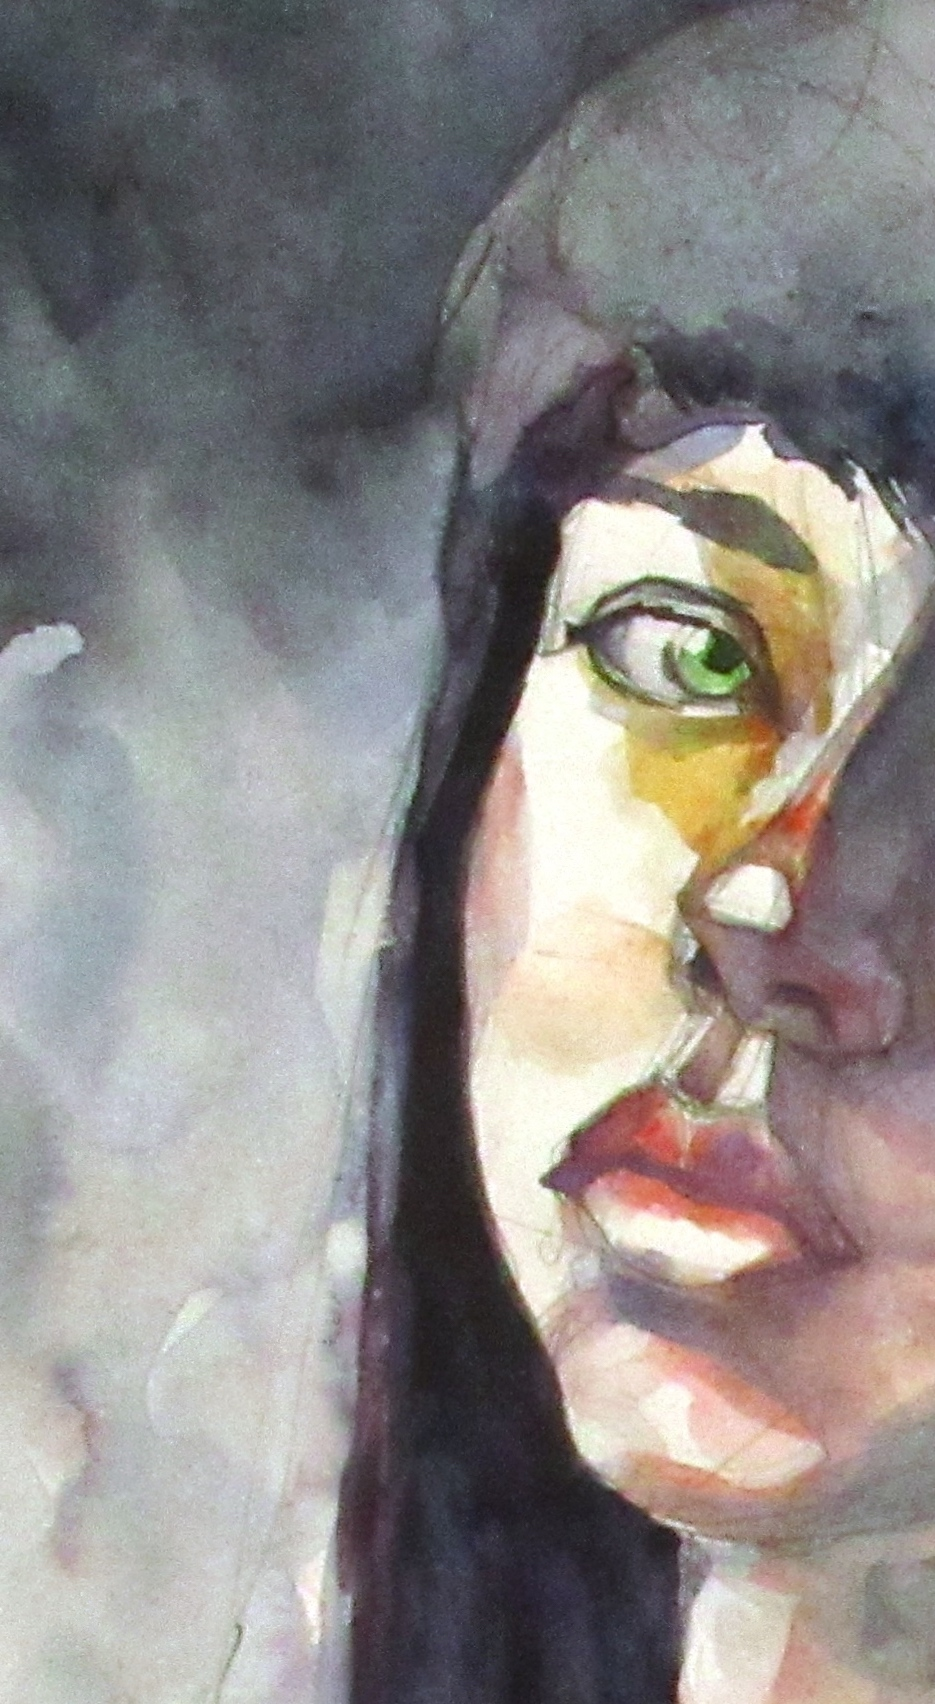 A watercolour portrait of a young woman with dark hair and green eyes.